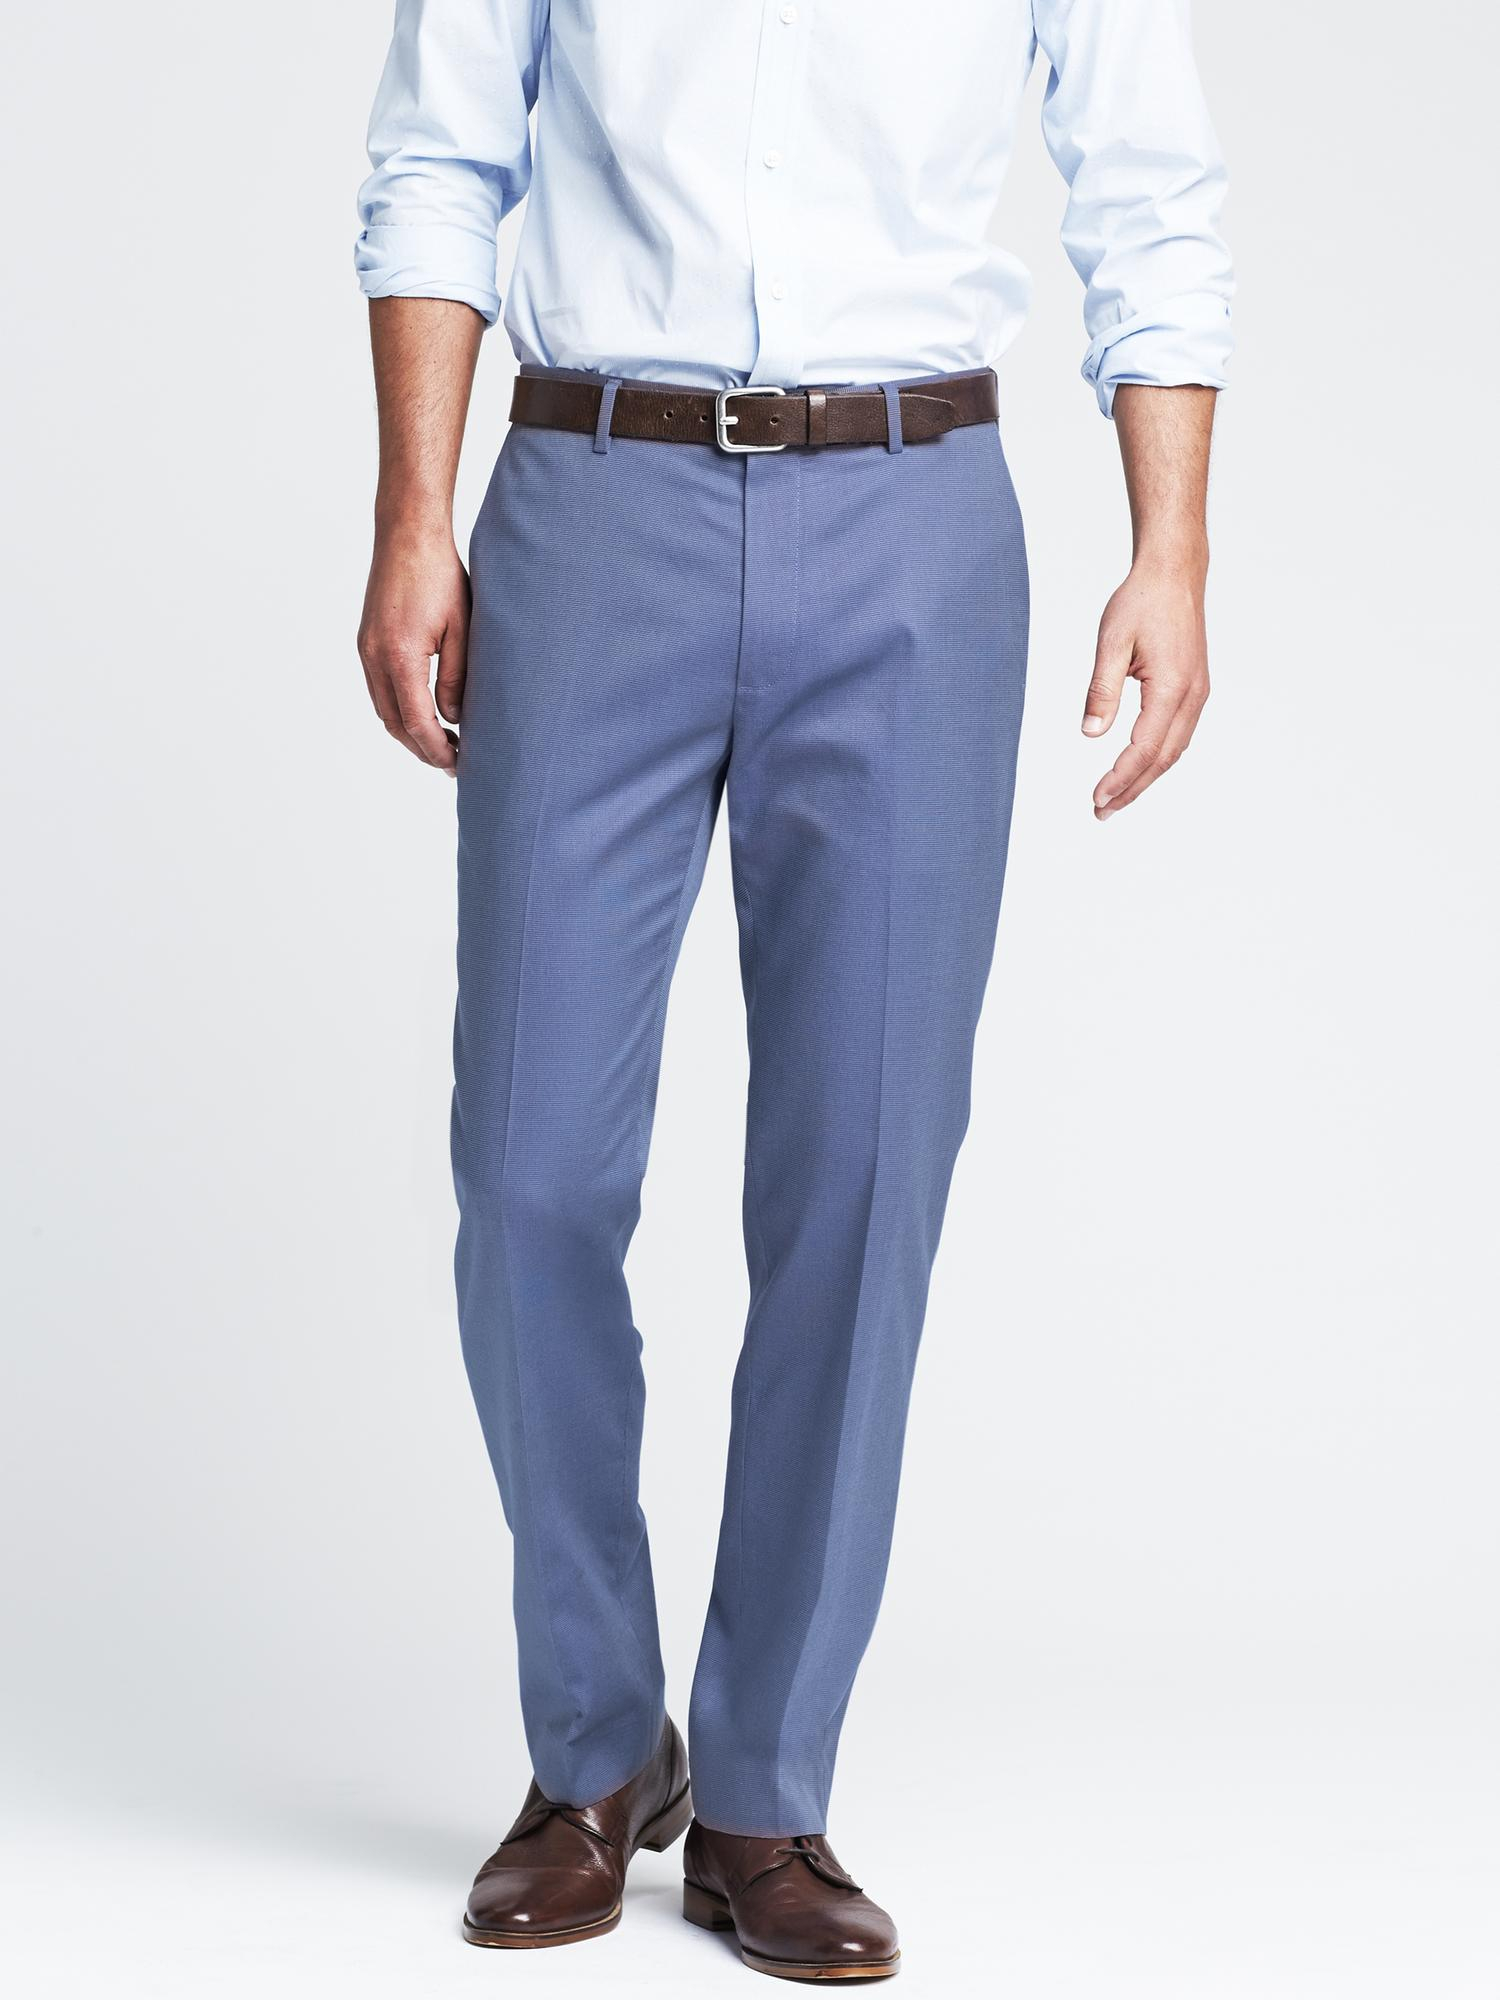 Enro Big & Tall Dress Clothes. Since , Enro has been at the forefront of innovation in high-end dress shirting. Their invention of the % cotton non-iron dress shirt marked a new step in the evolution of dress clothing.